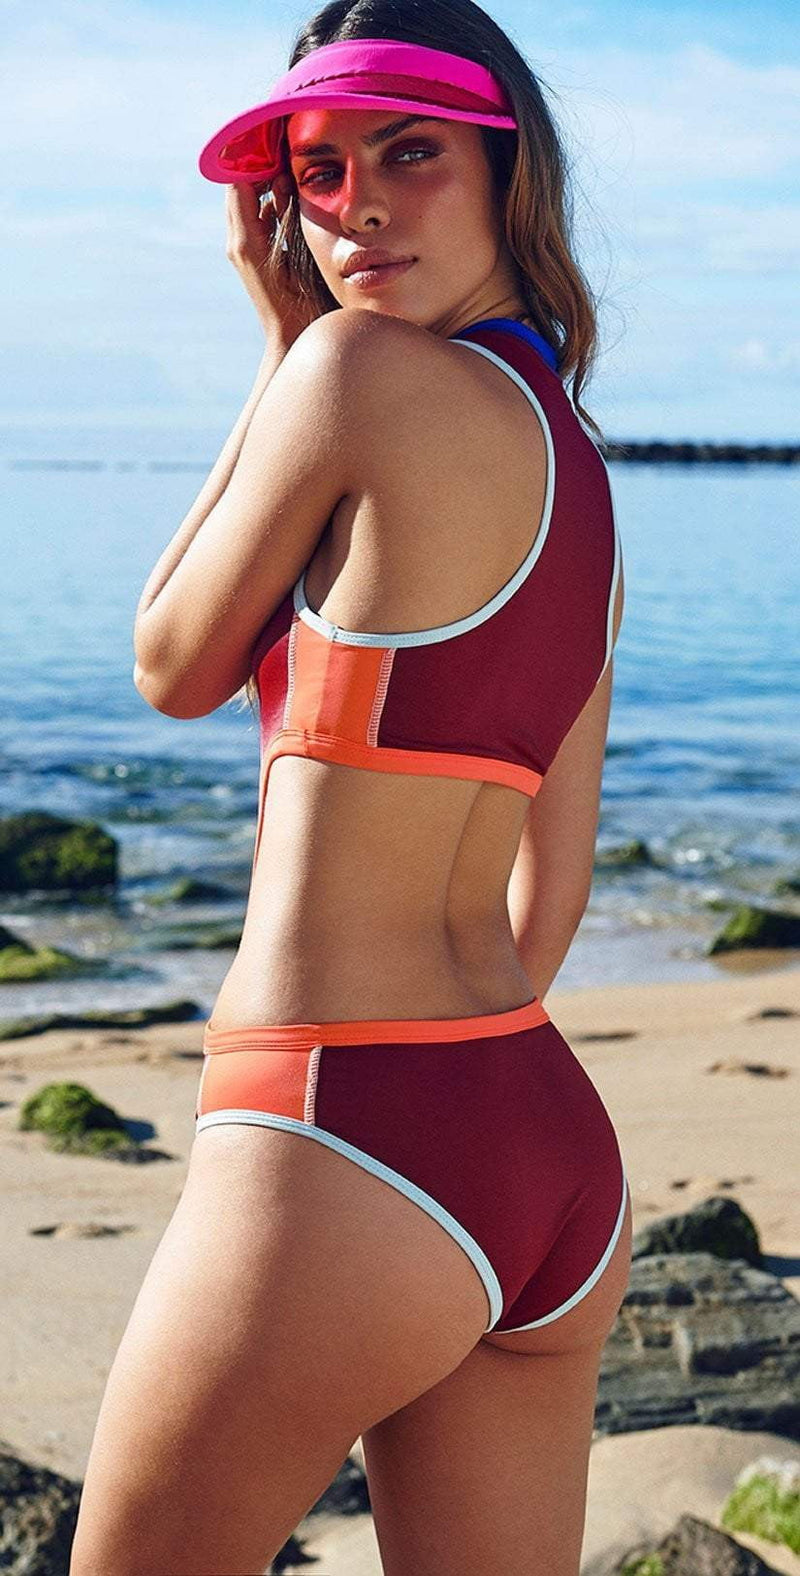 Irgus Swimwear Color Block Monokini in Burgundy 3100: